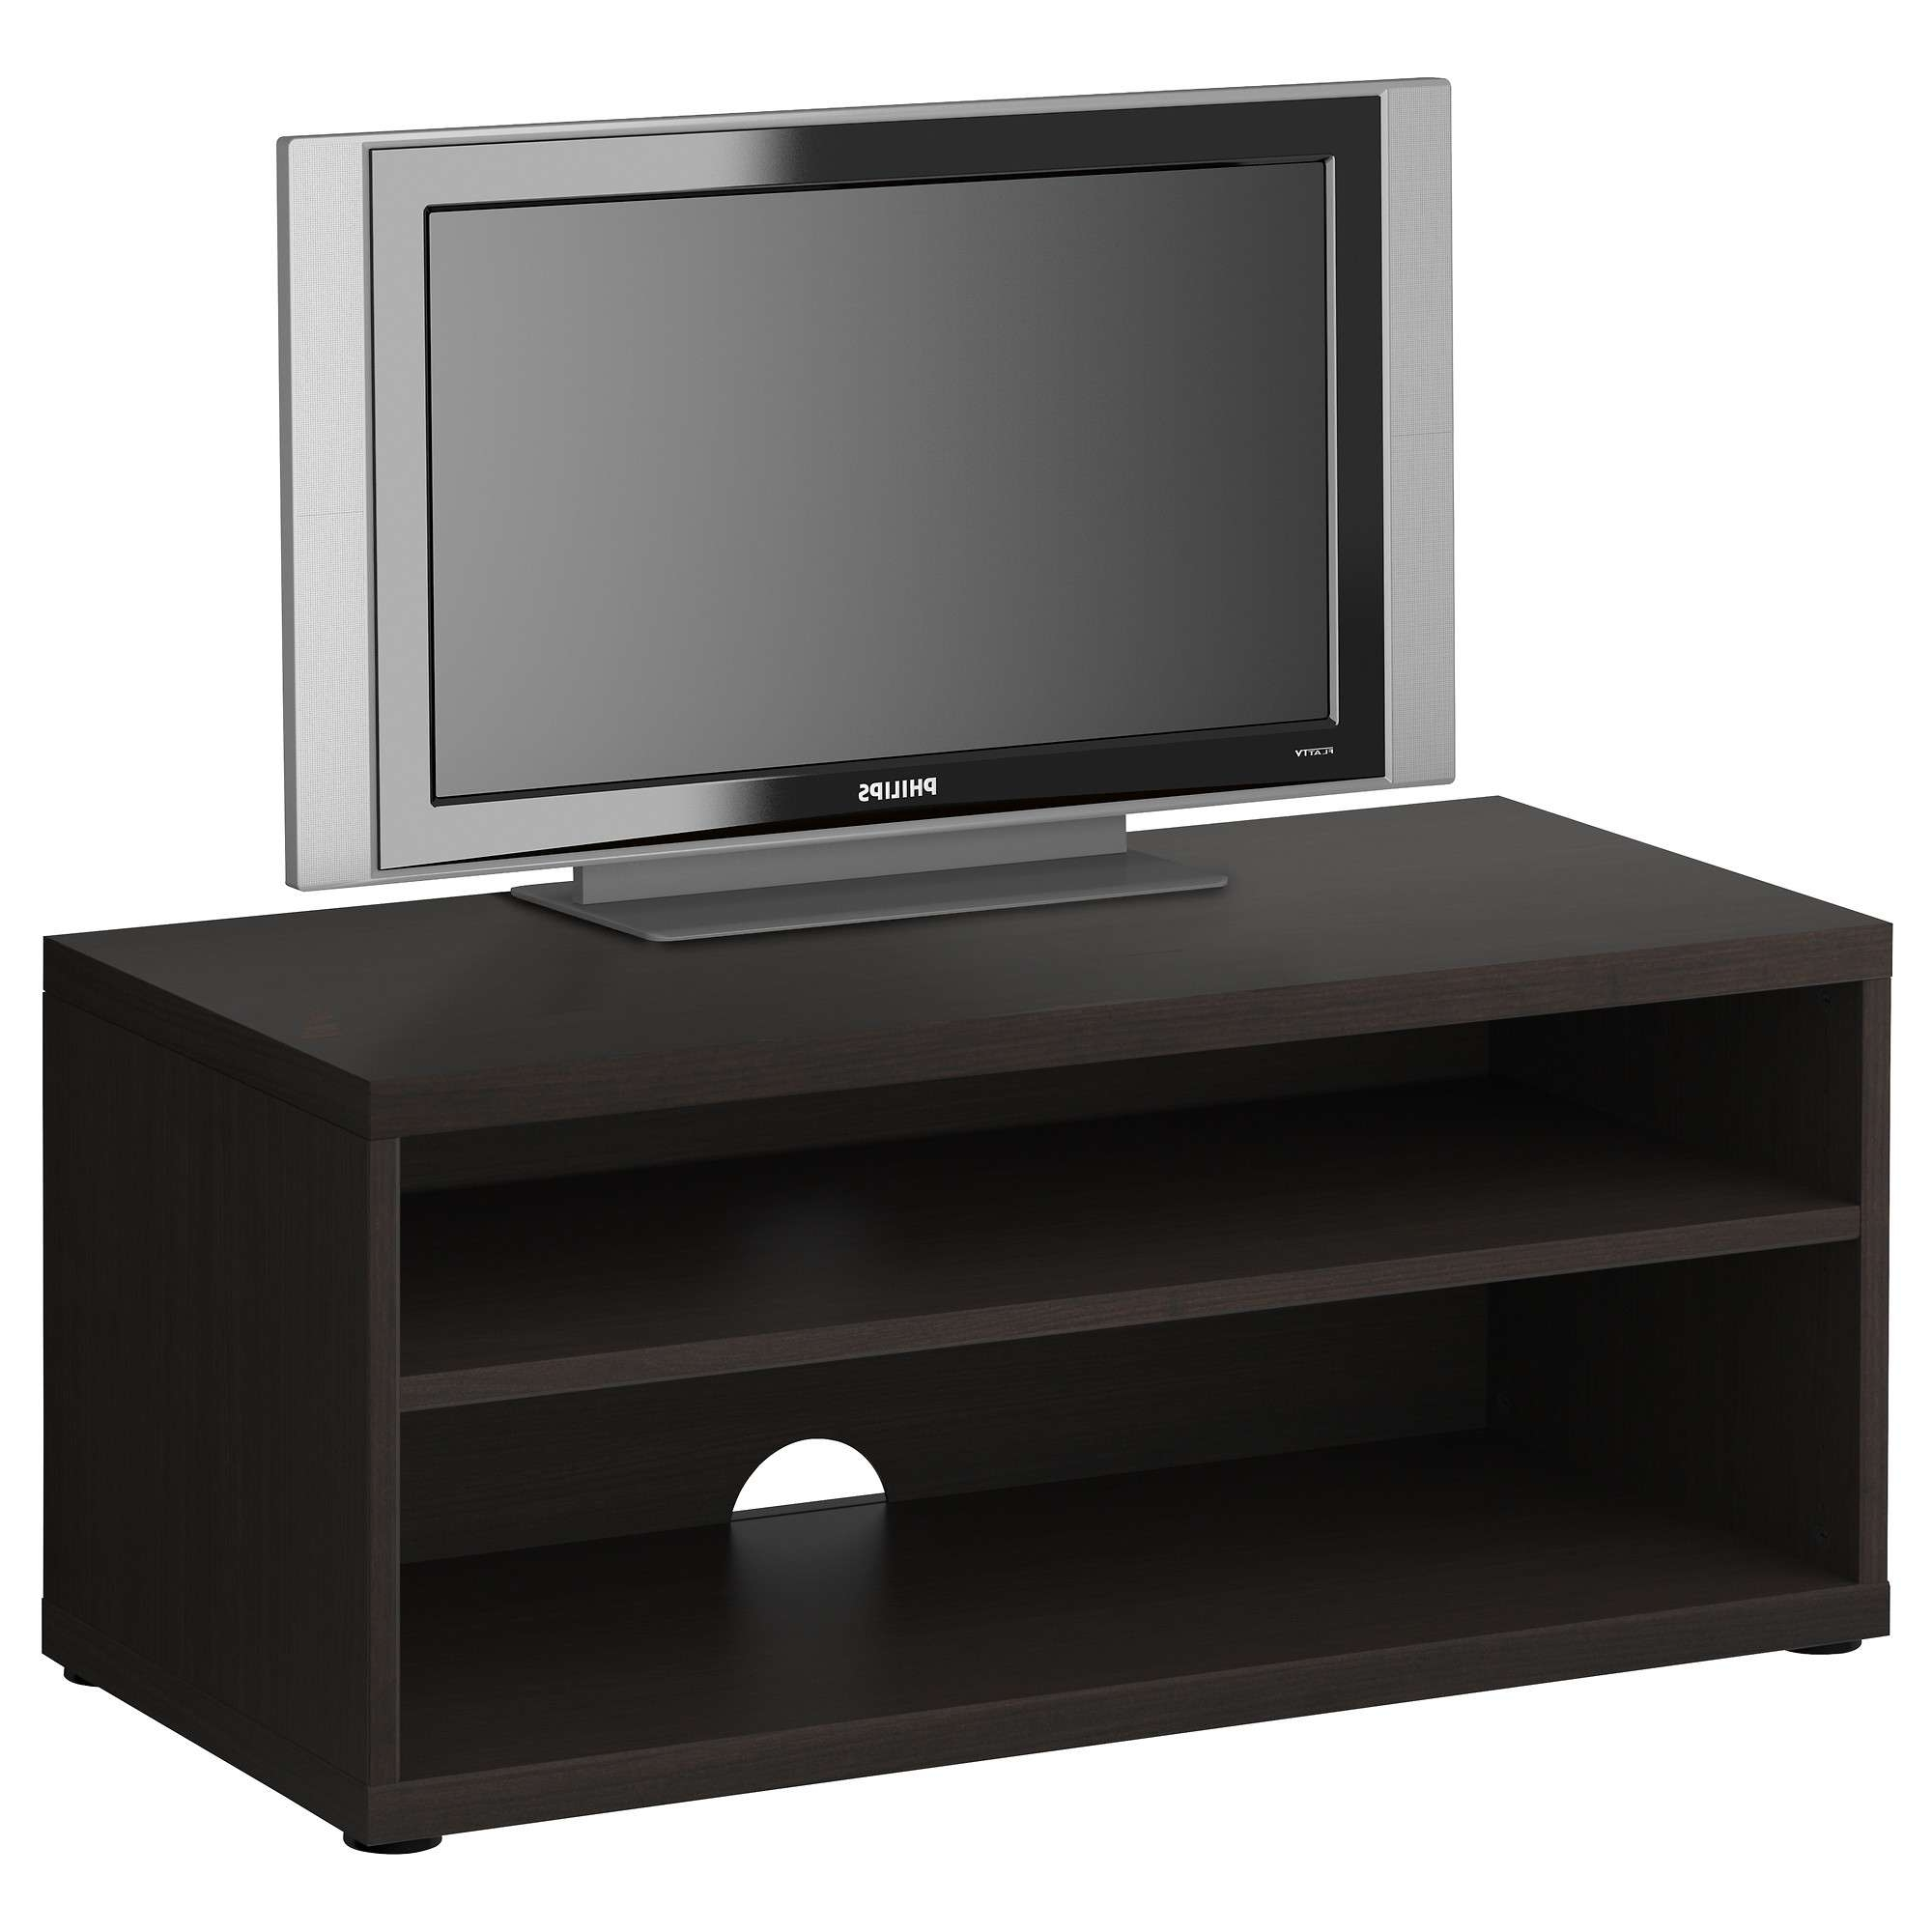 Mosjö Tv Bench Black Brown 90x40x38 Cm – Ikea With Tv Stands At Ikea (View 2 of 15)